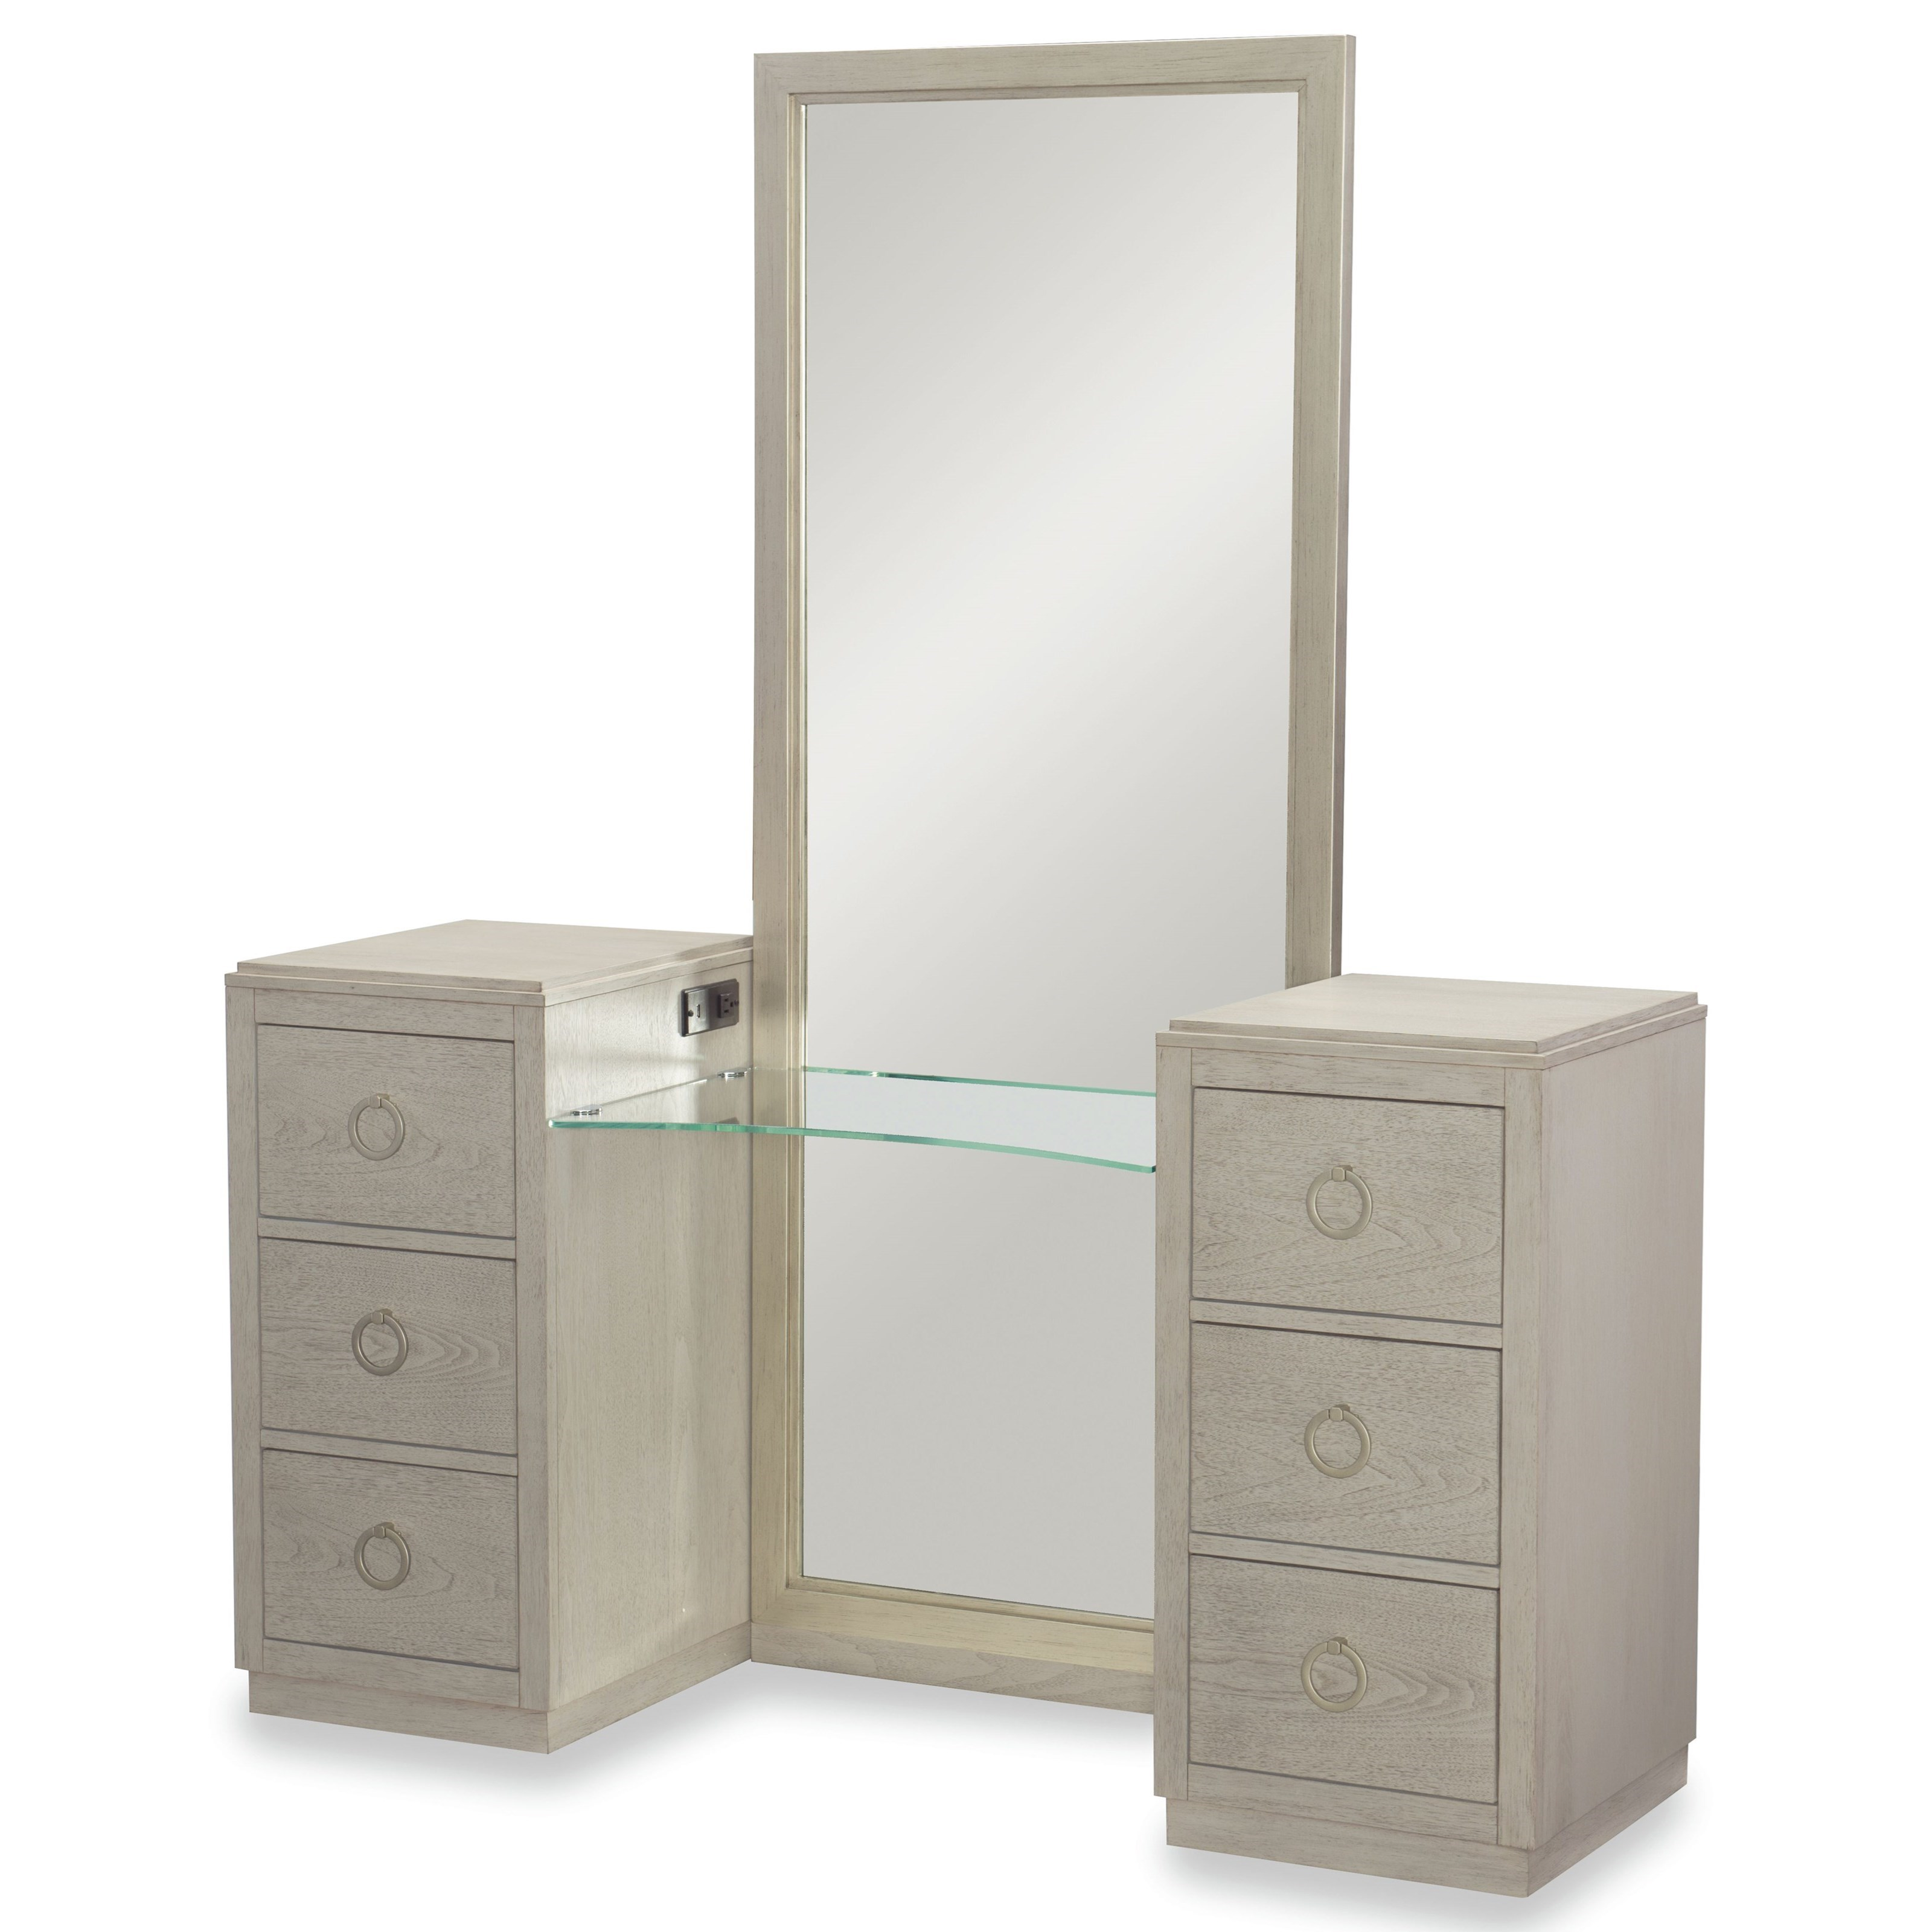 Rachael Ray Home by Legacy Classic Cinema Vanity Mirror  - Item Number: 7200-0700